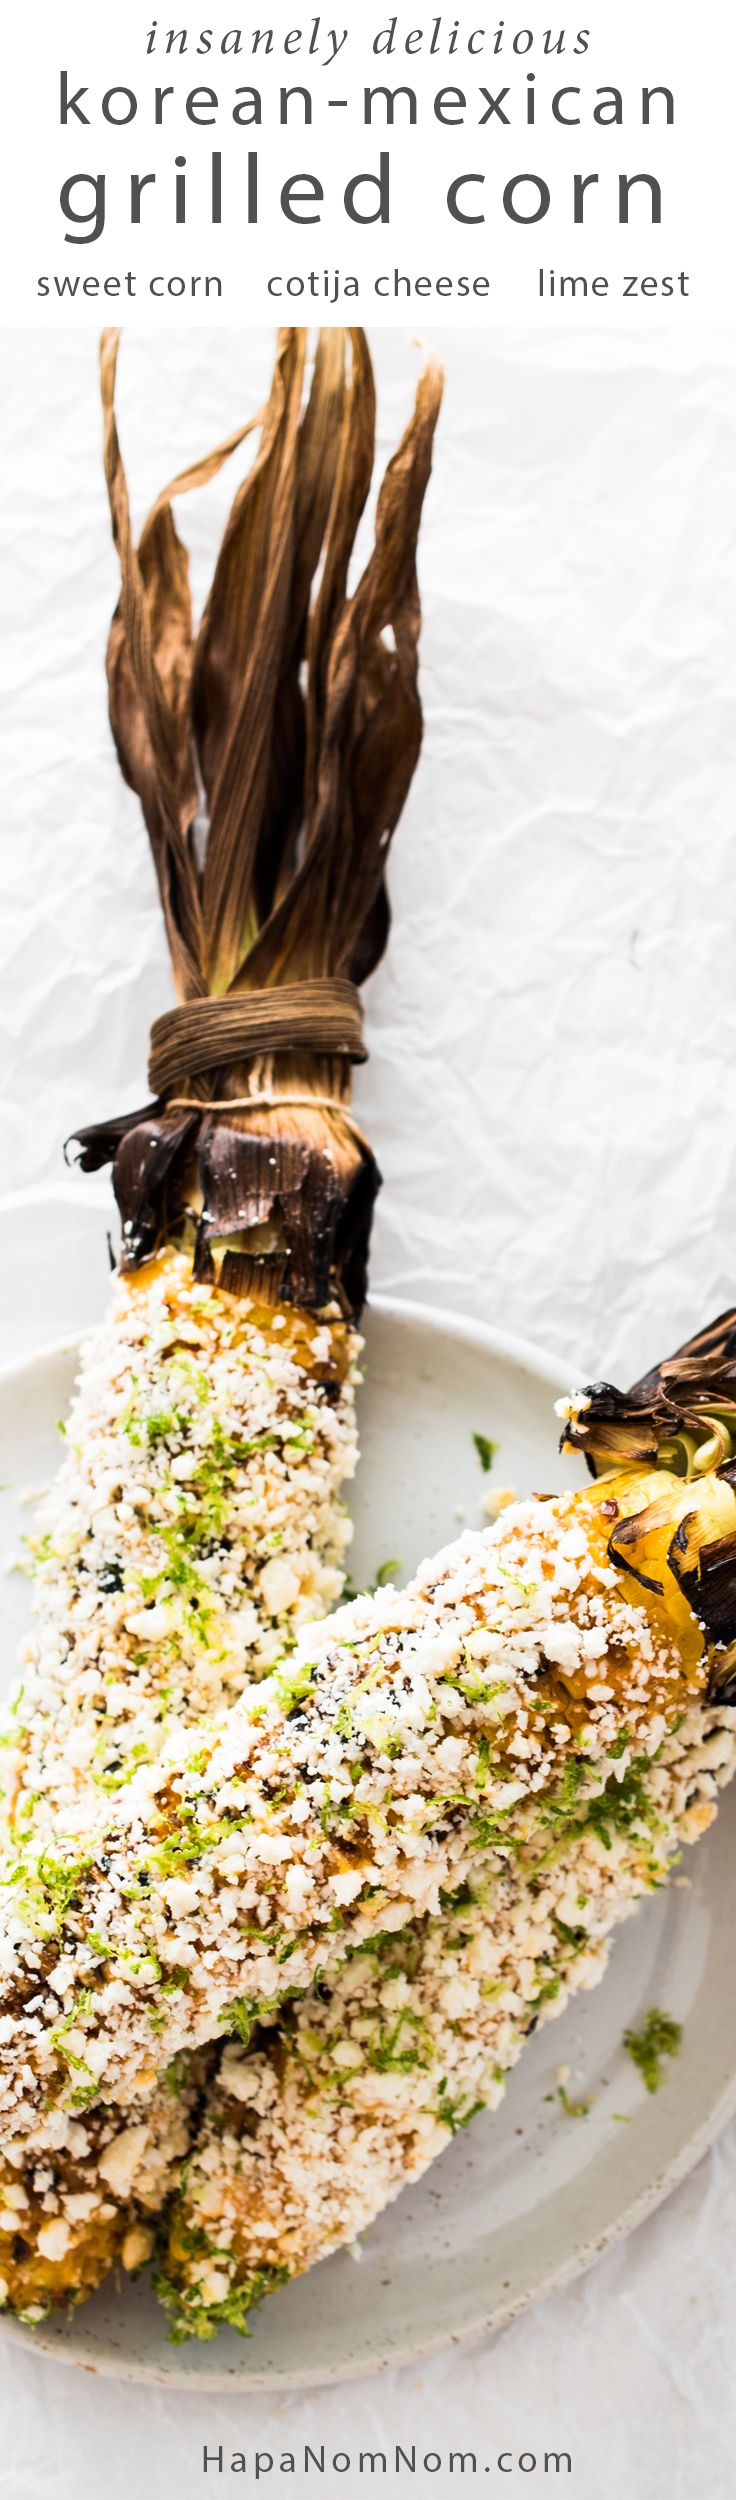 The spicy umami flavor of the gochujang, paired with the sweet corn, zesty lime, and salty cotija cheese make this Korean-Mexican Grilled Corn INSANELY delicious!